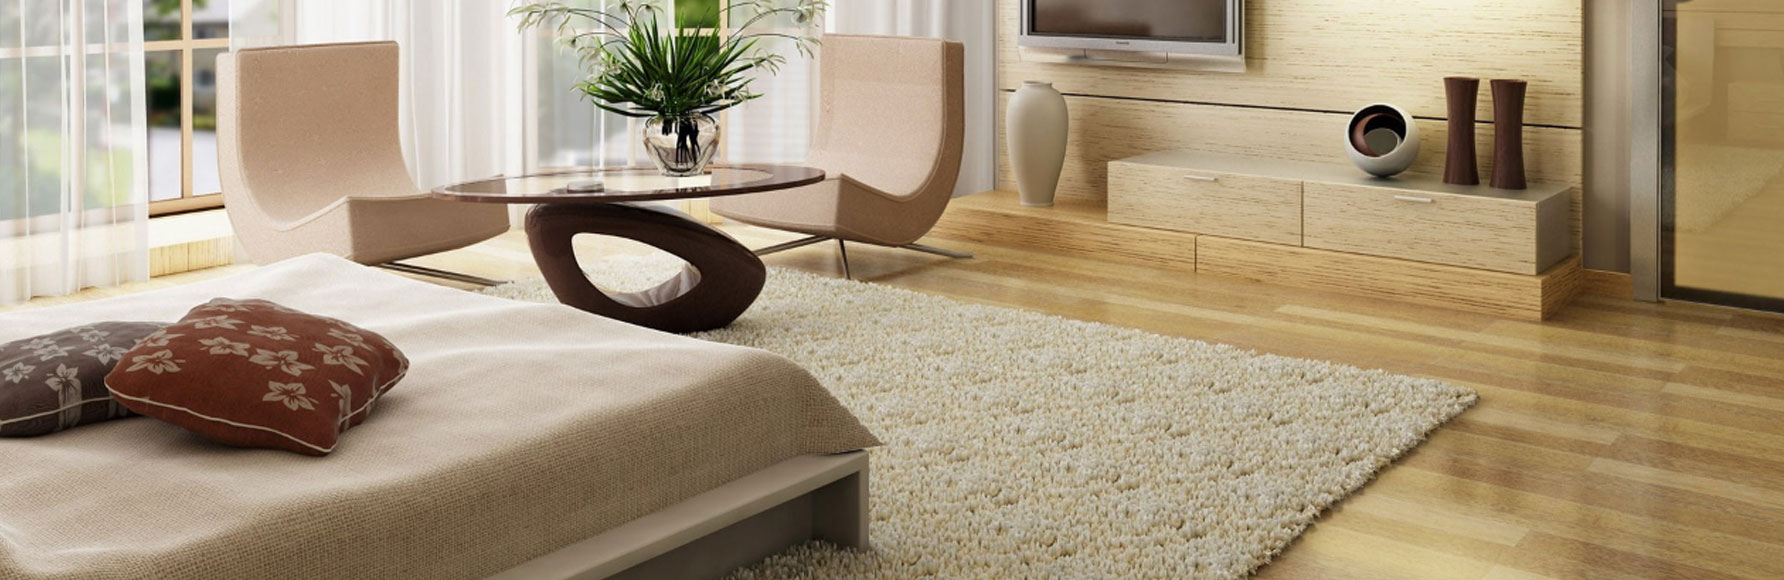 carpet protection by California Steam Clean